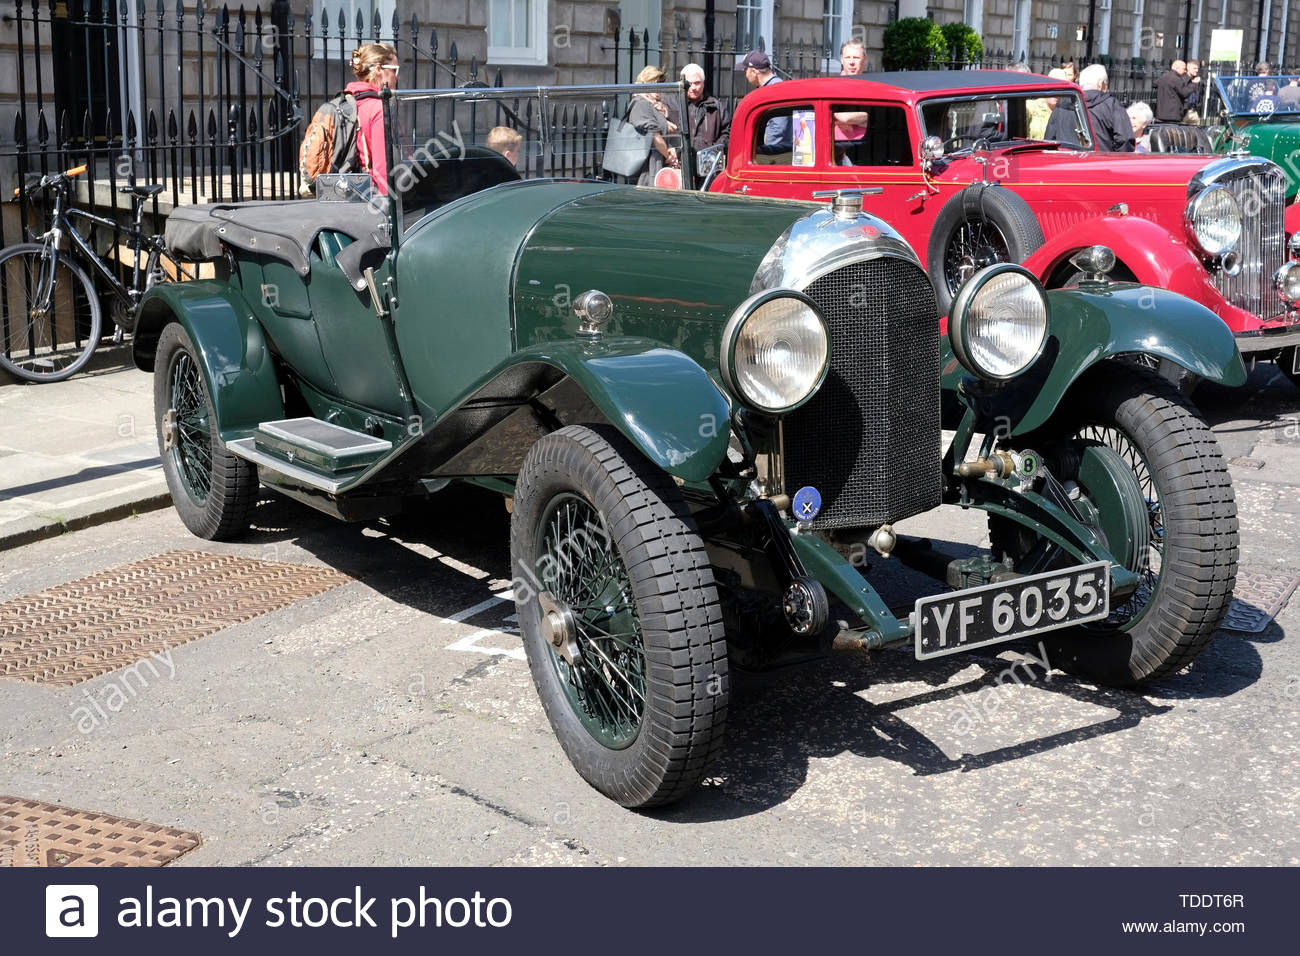 Classic Bentley from 1927 on display at the West End Classic Vehicle event in Edinburgh, Scotland - Stock Image